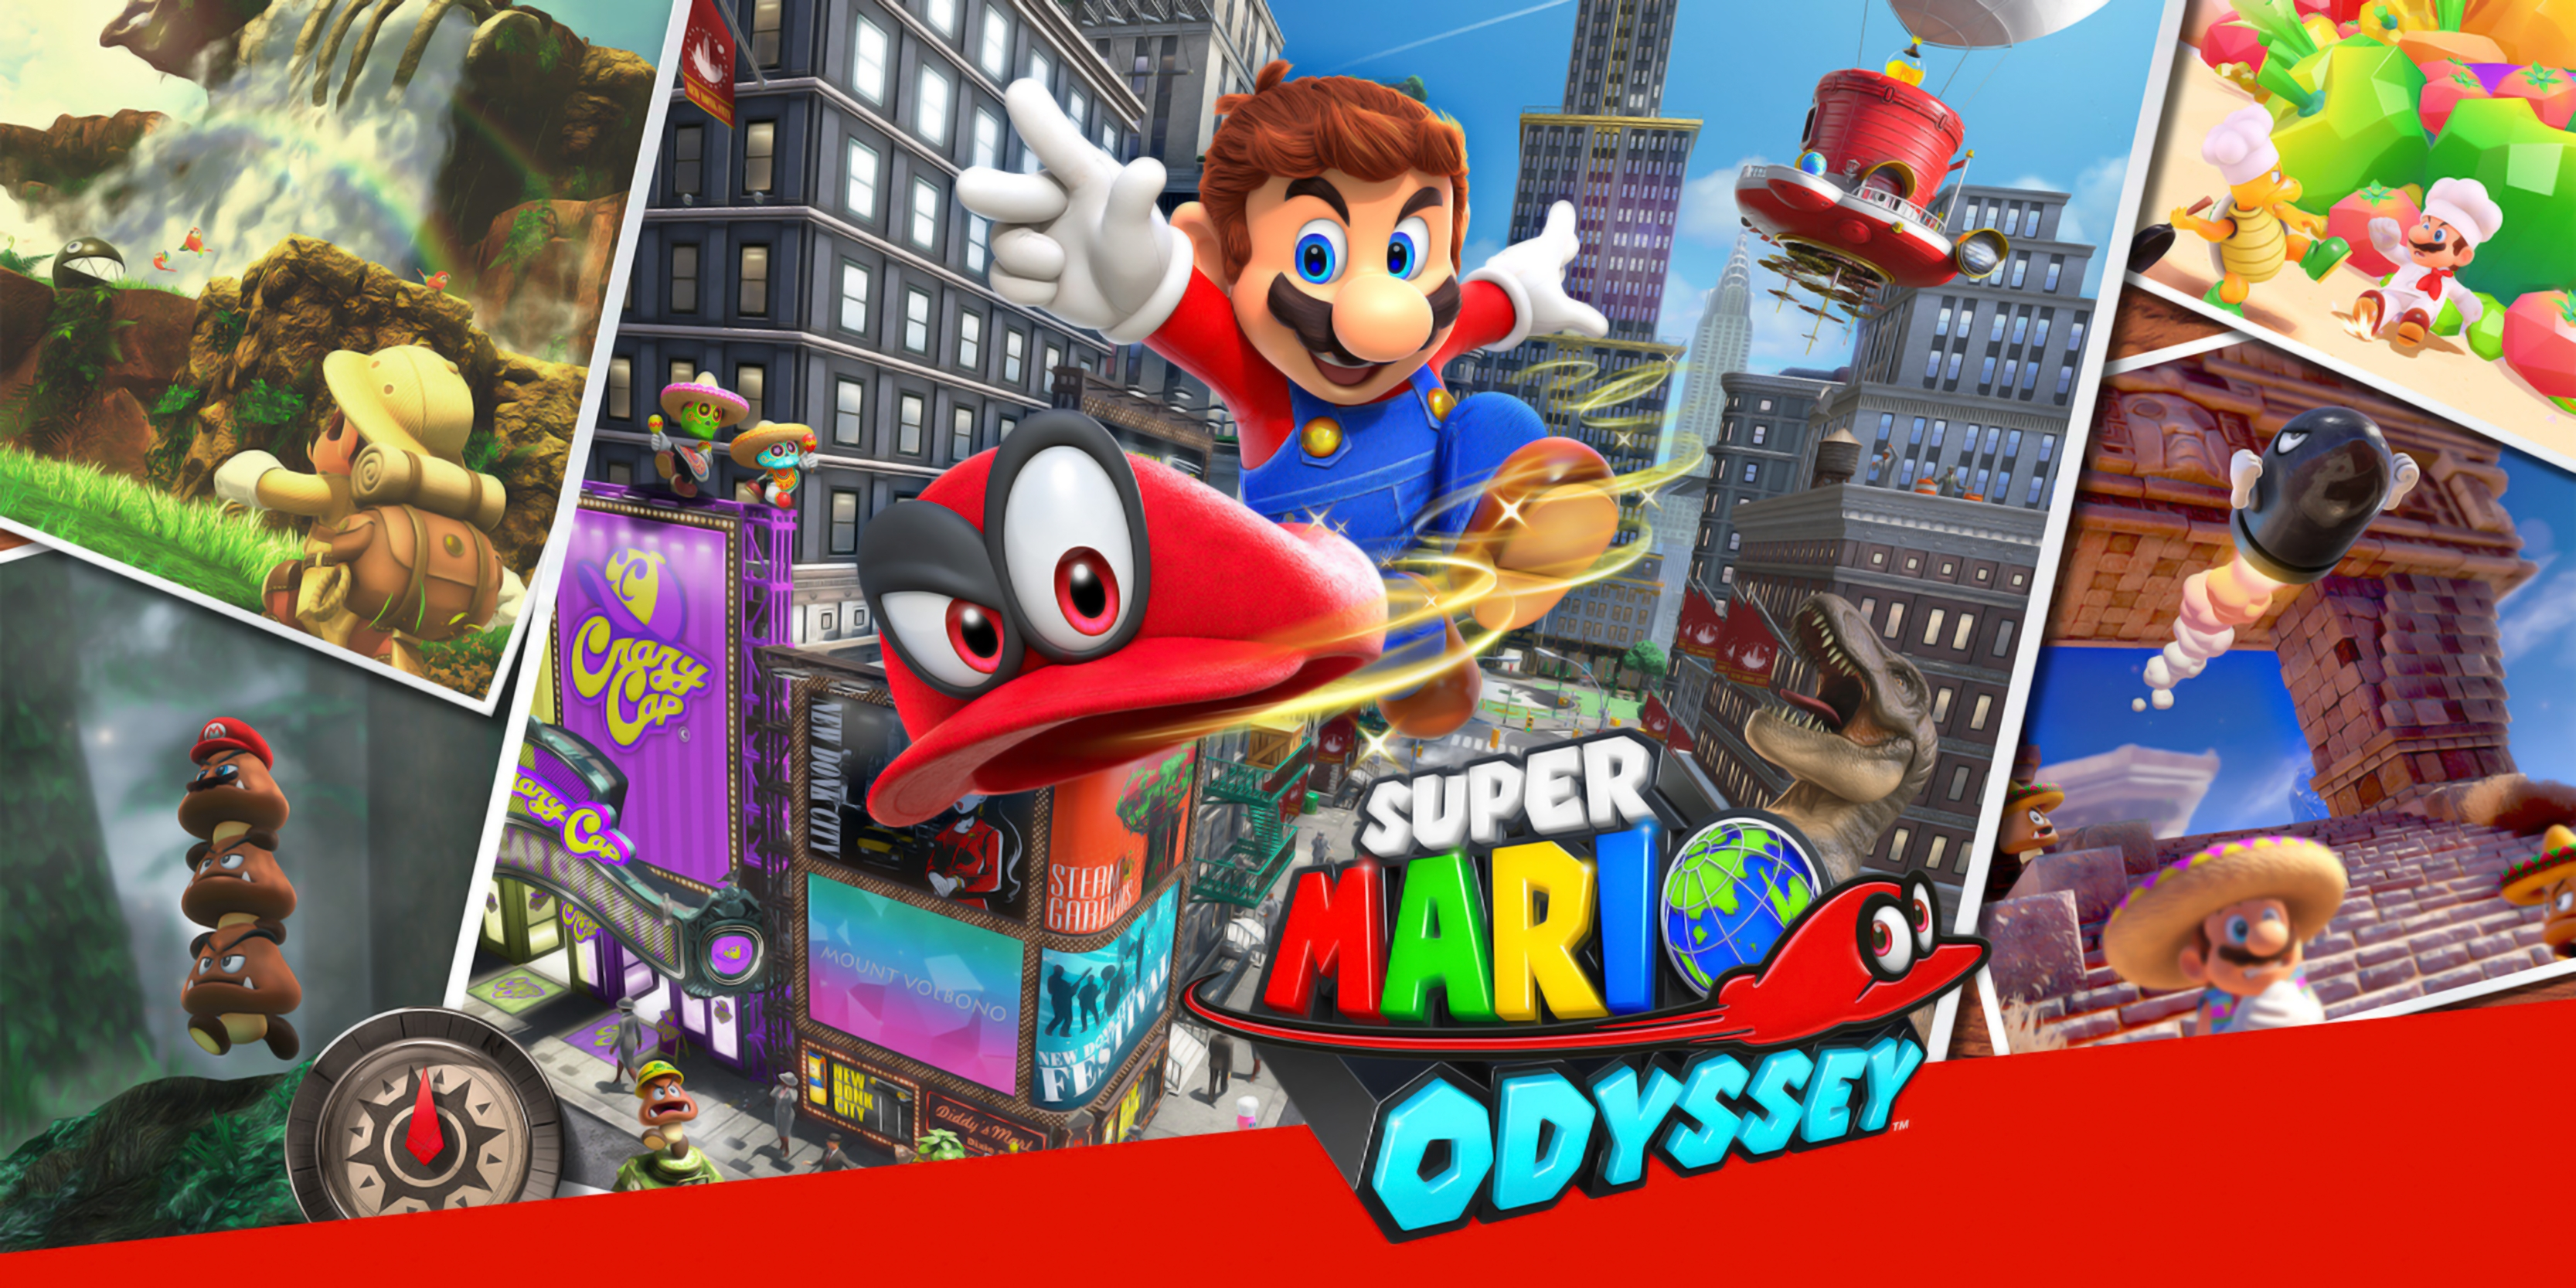 10 Top Super Mario Odyssey Wallpaper FULL HD 1920×1080 For PC Background